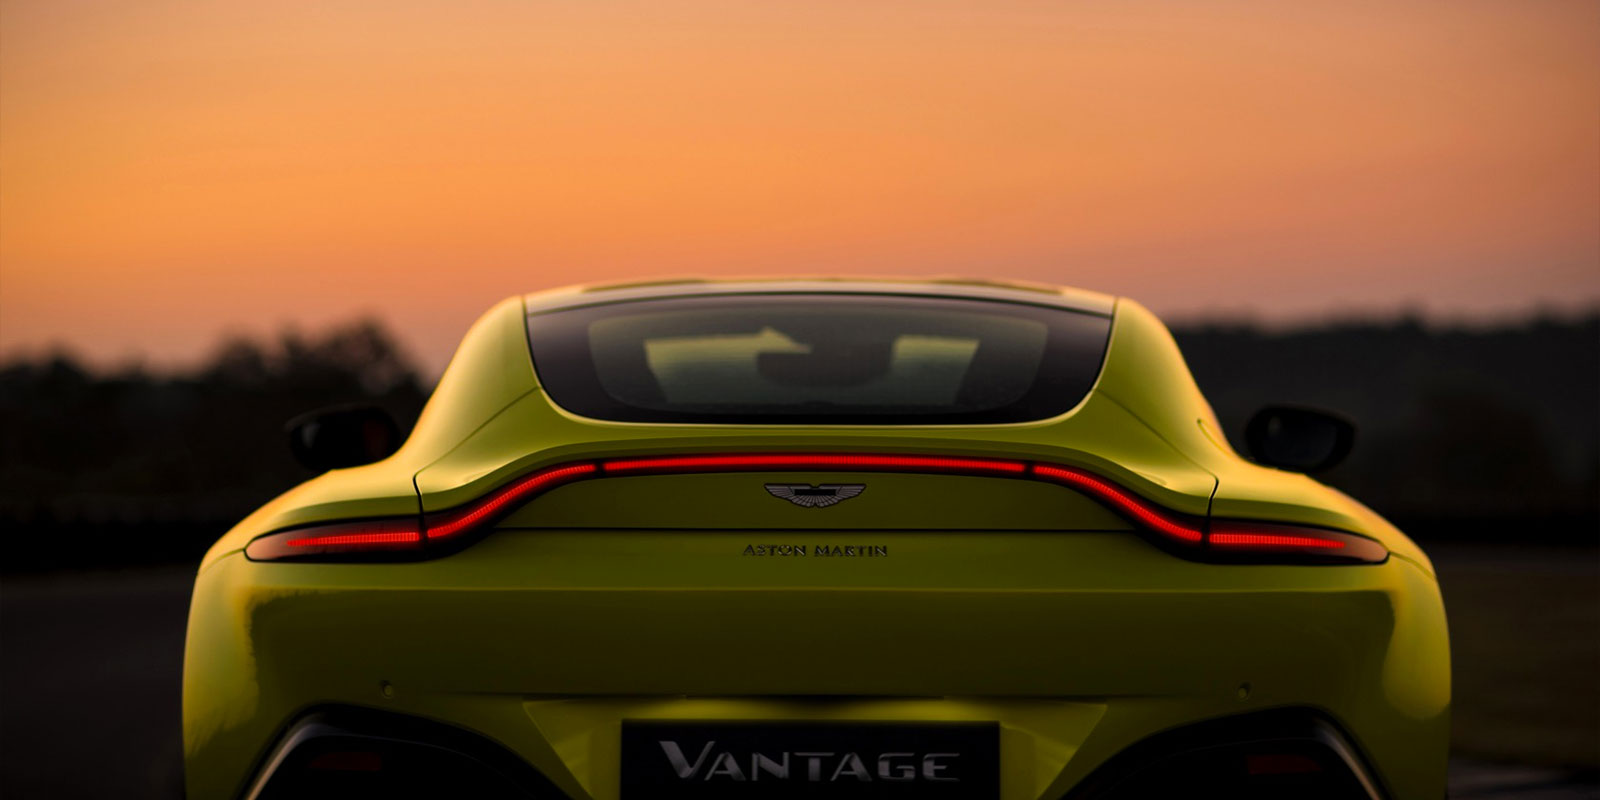 Aston Martin New Vantage - The Archetypal Hunter image 8